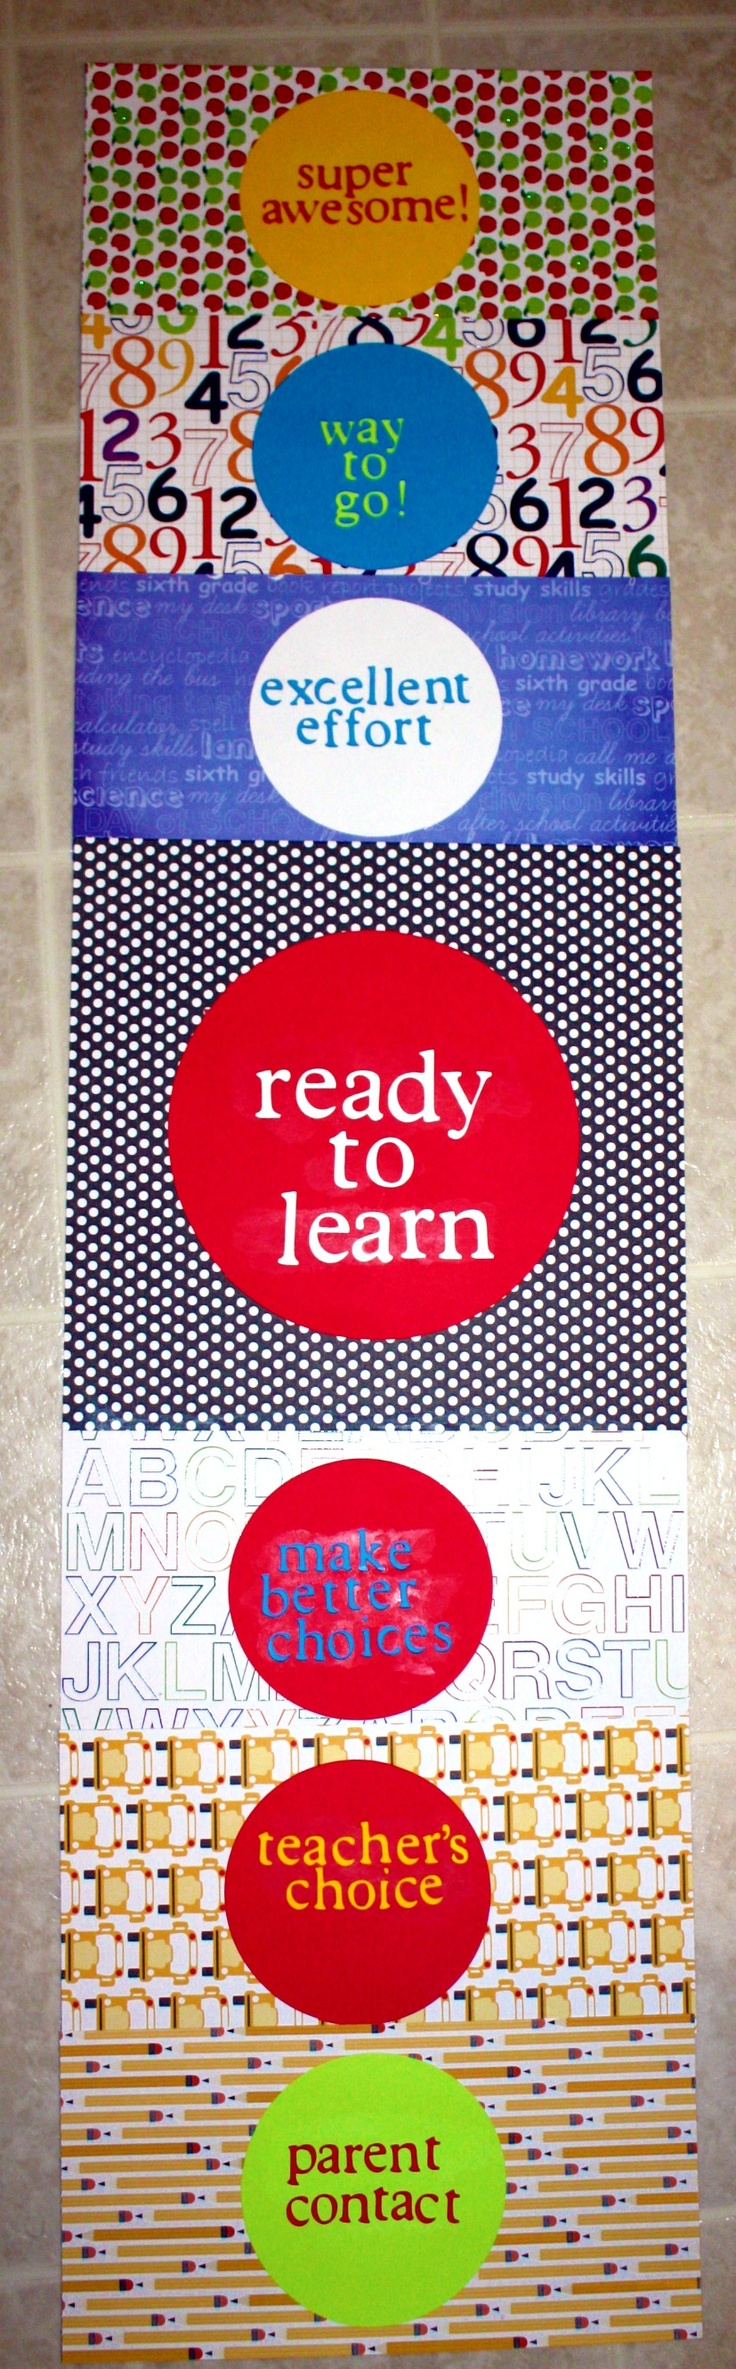 Classroom Ideas Using Cricut ~ Best images about teaching cricut classroom on